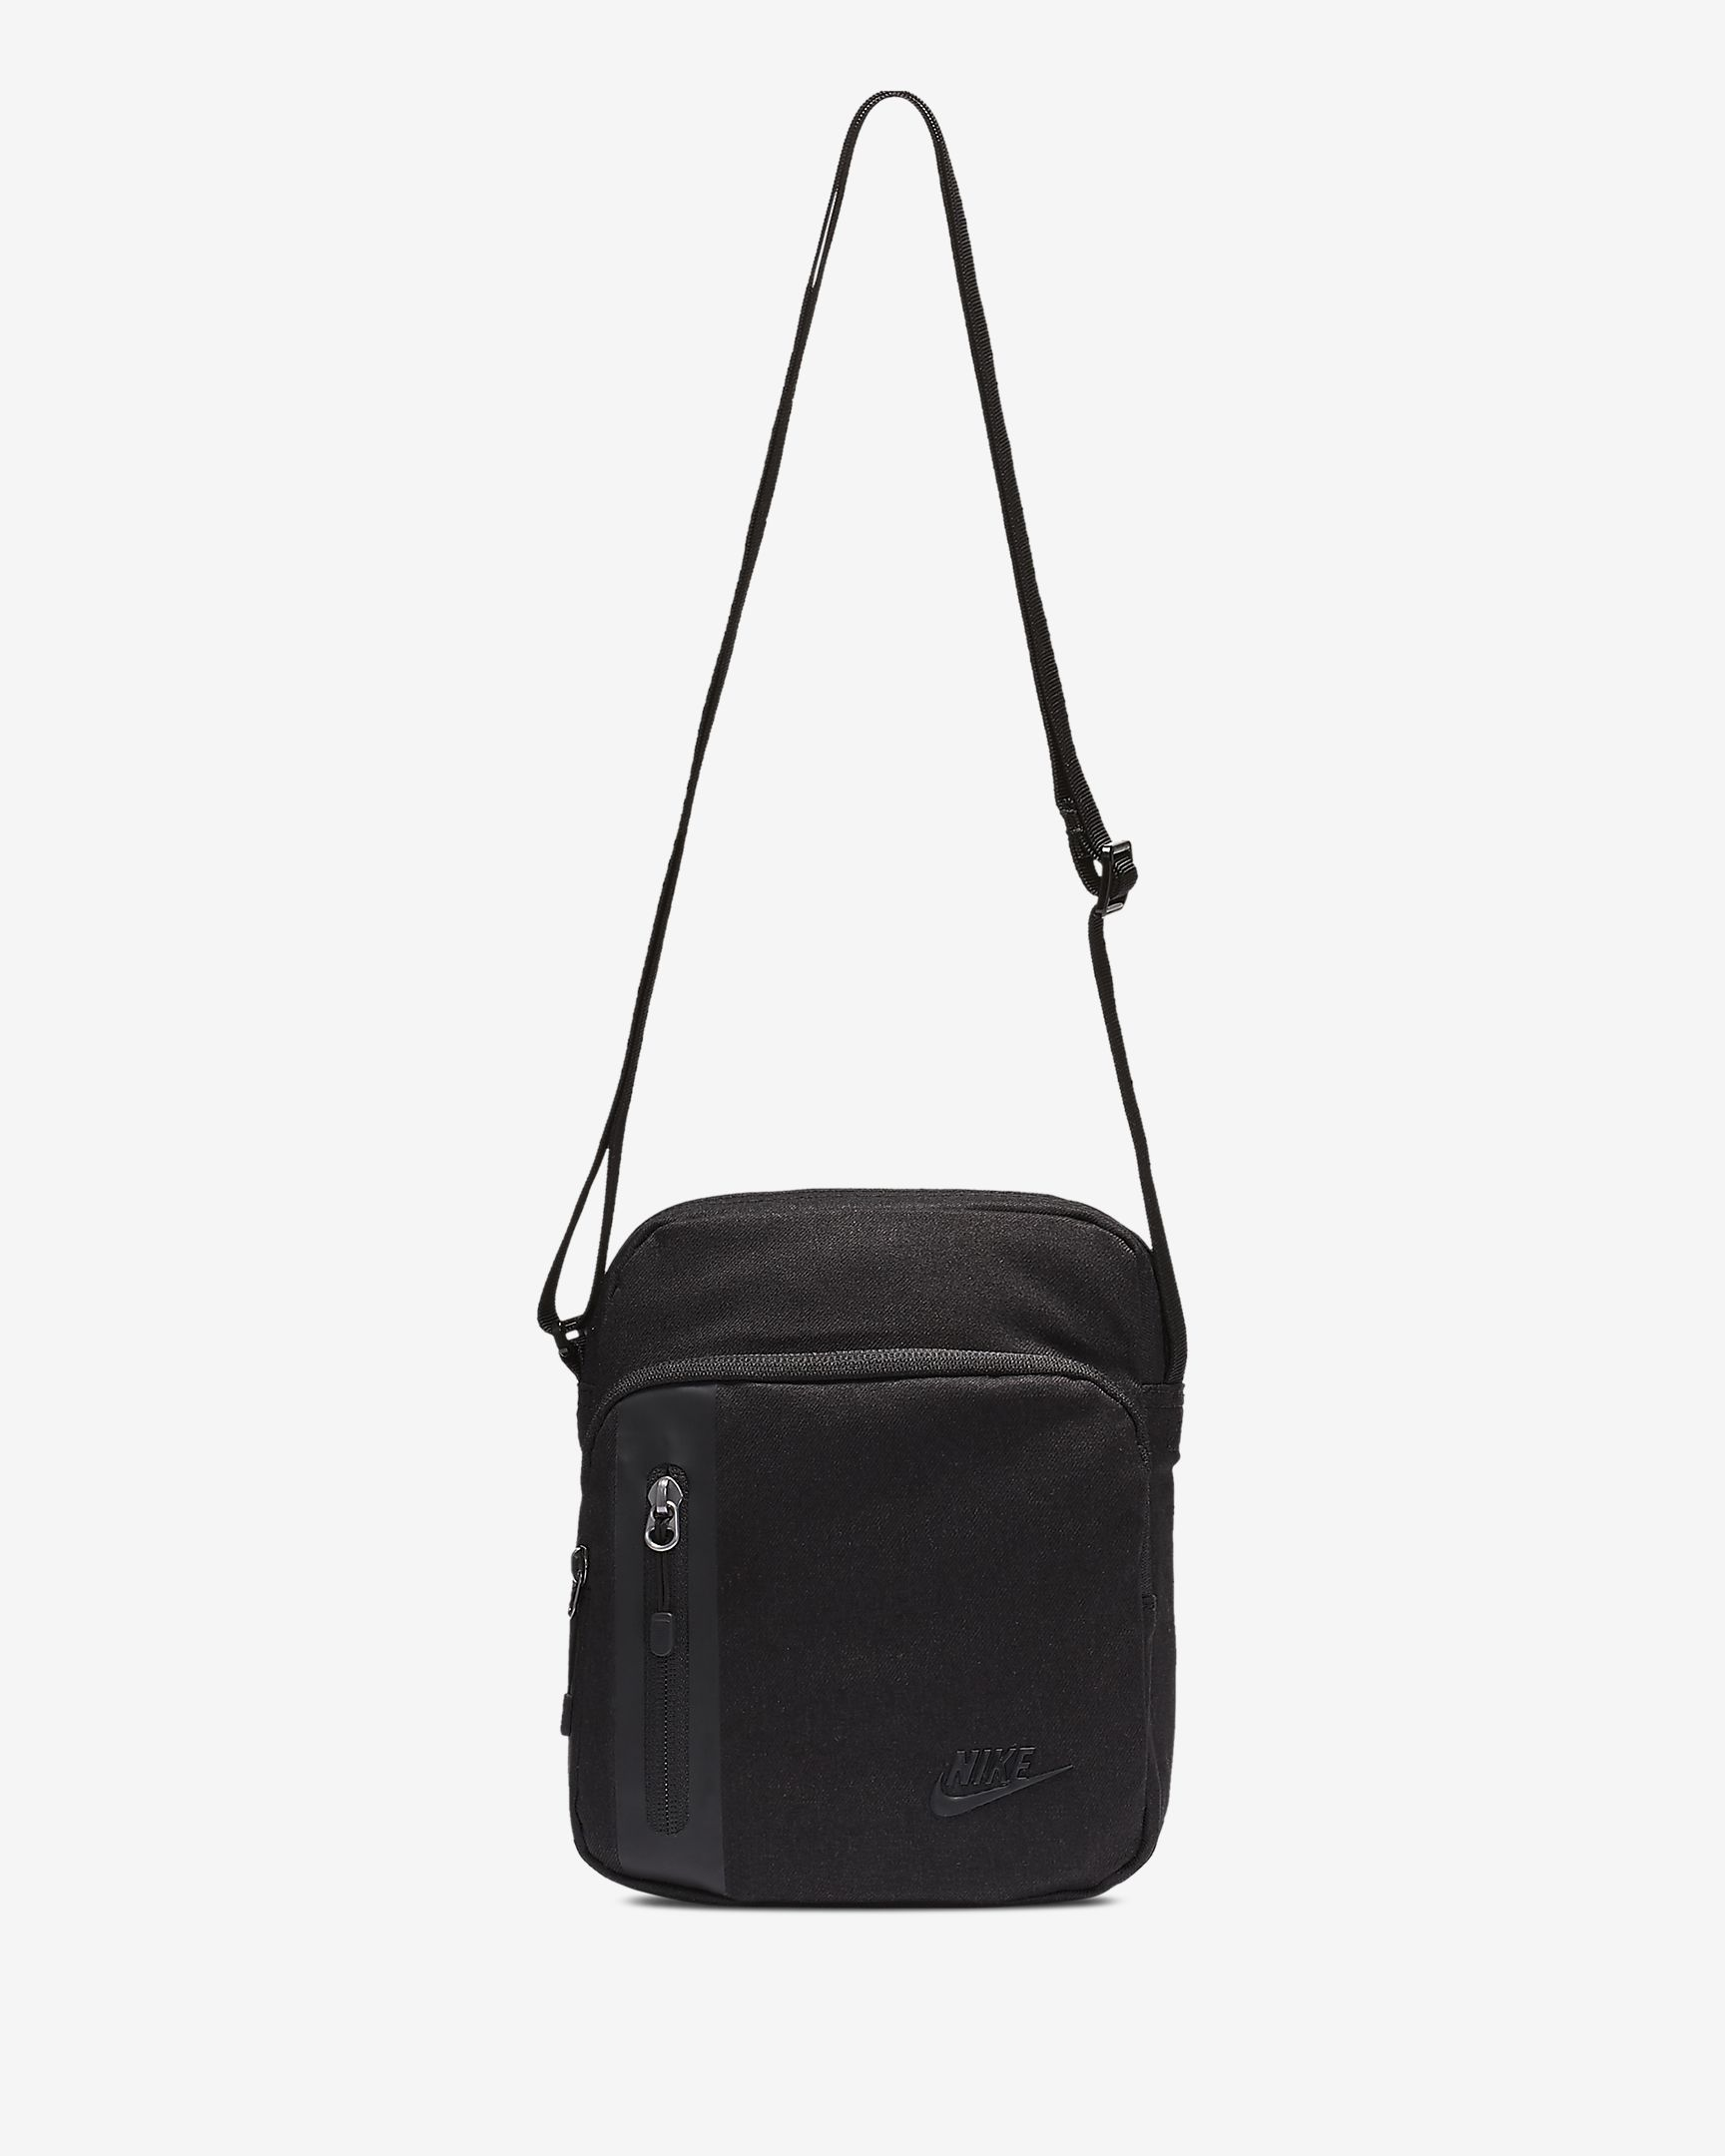 https://static.nike.com/a/images/t_PDP_1728_v1/f_auto,b_rgb:f5f5f5/lxnss2k6glntey8ojd4g/tech-cross-body-bag-6R8Jfm.jpg